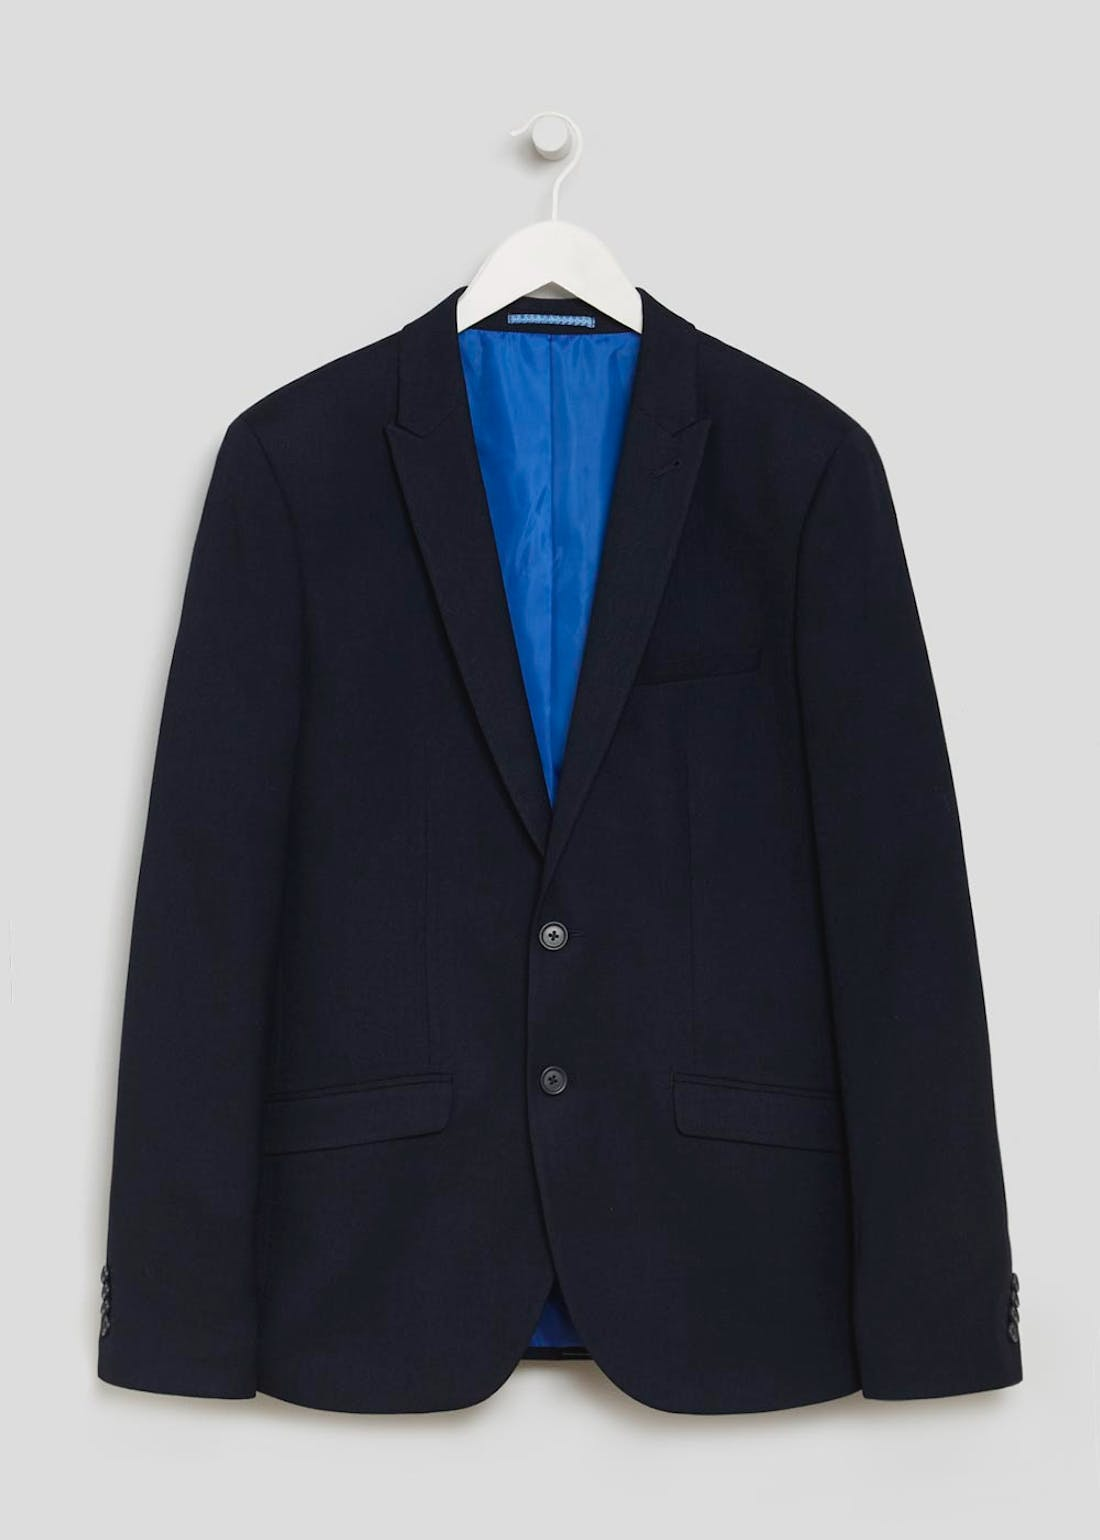 Taylor & Wright Murray Skinny Fit Suit Jacket